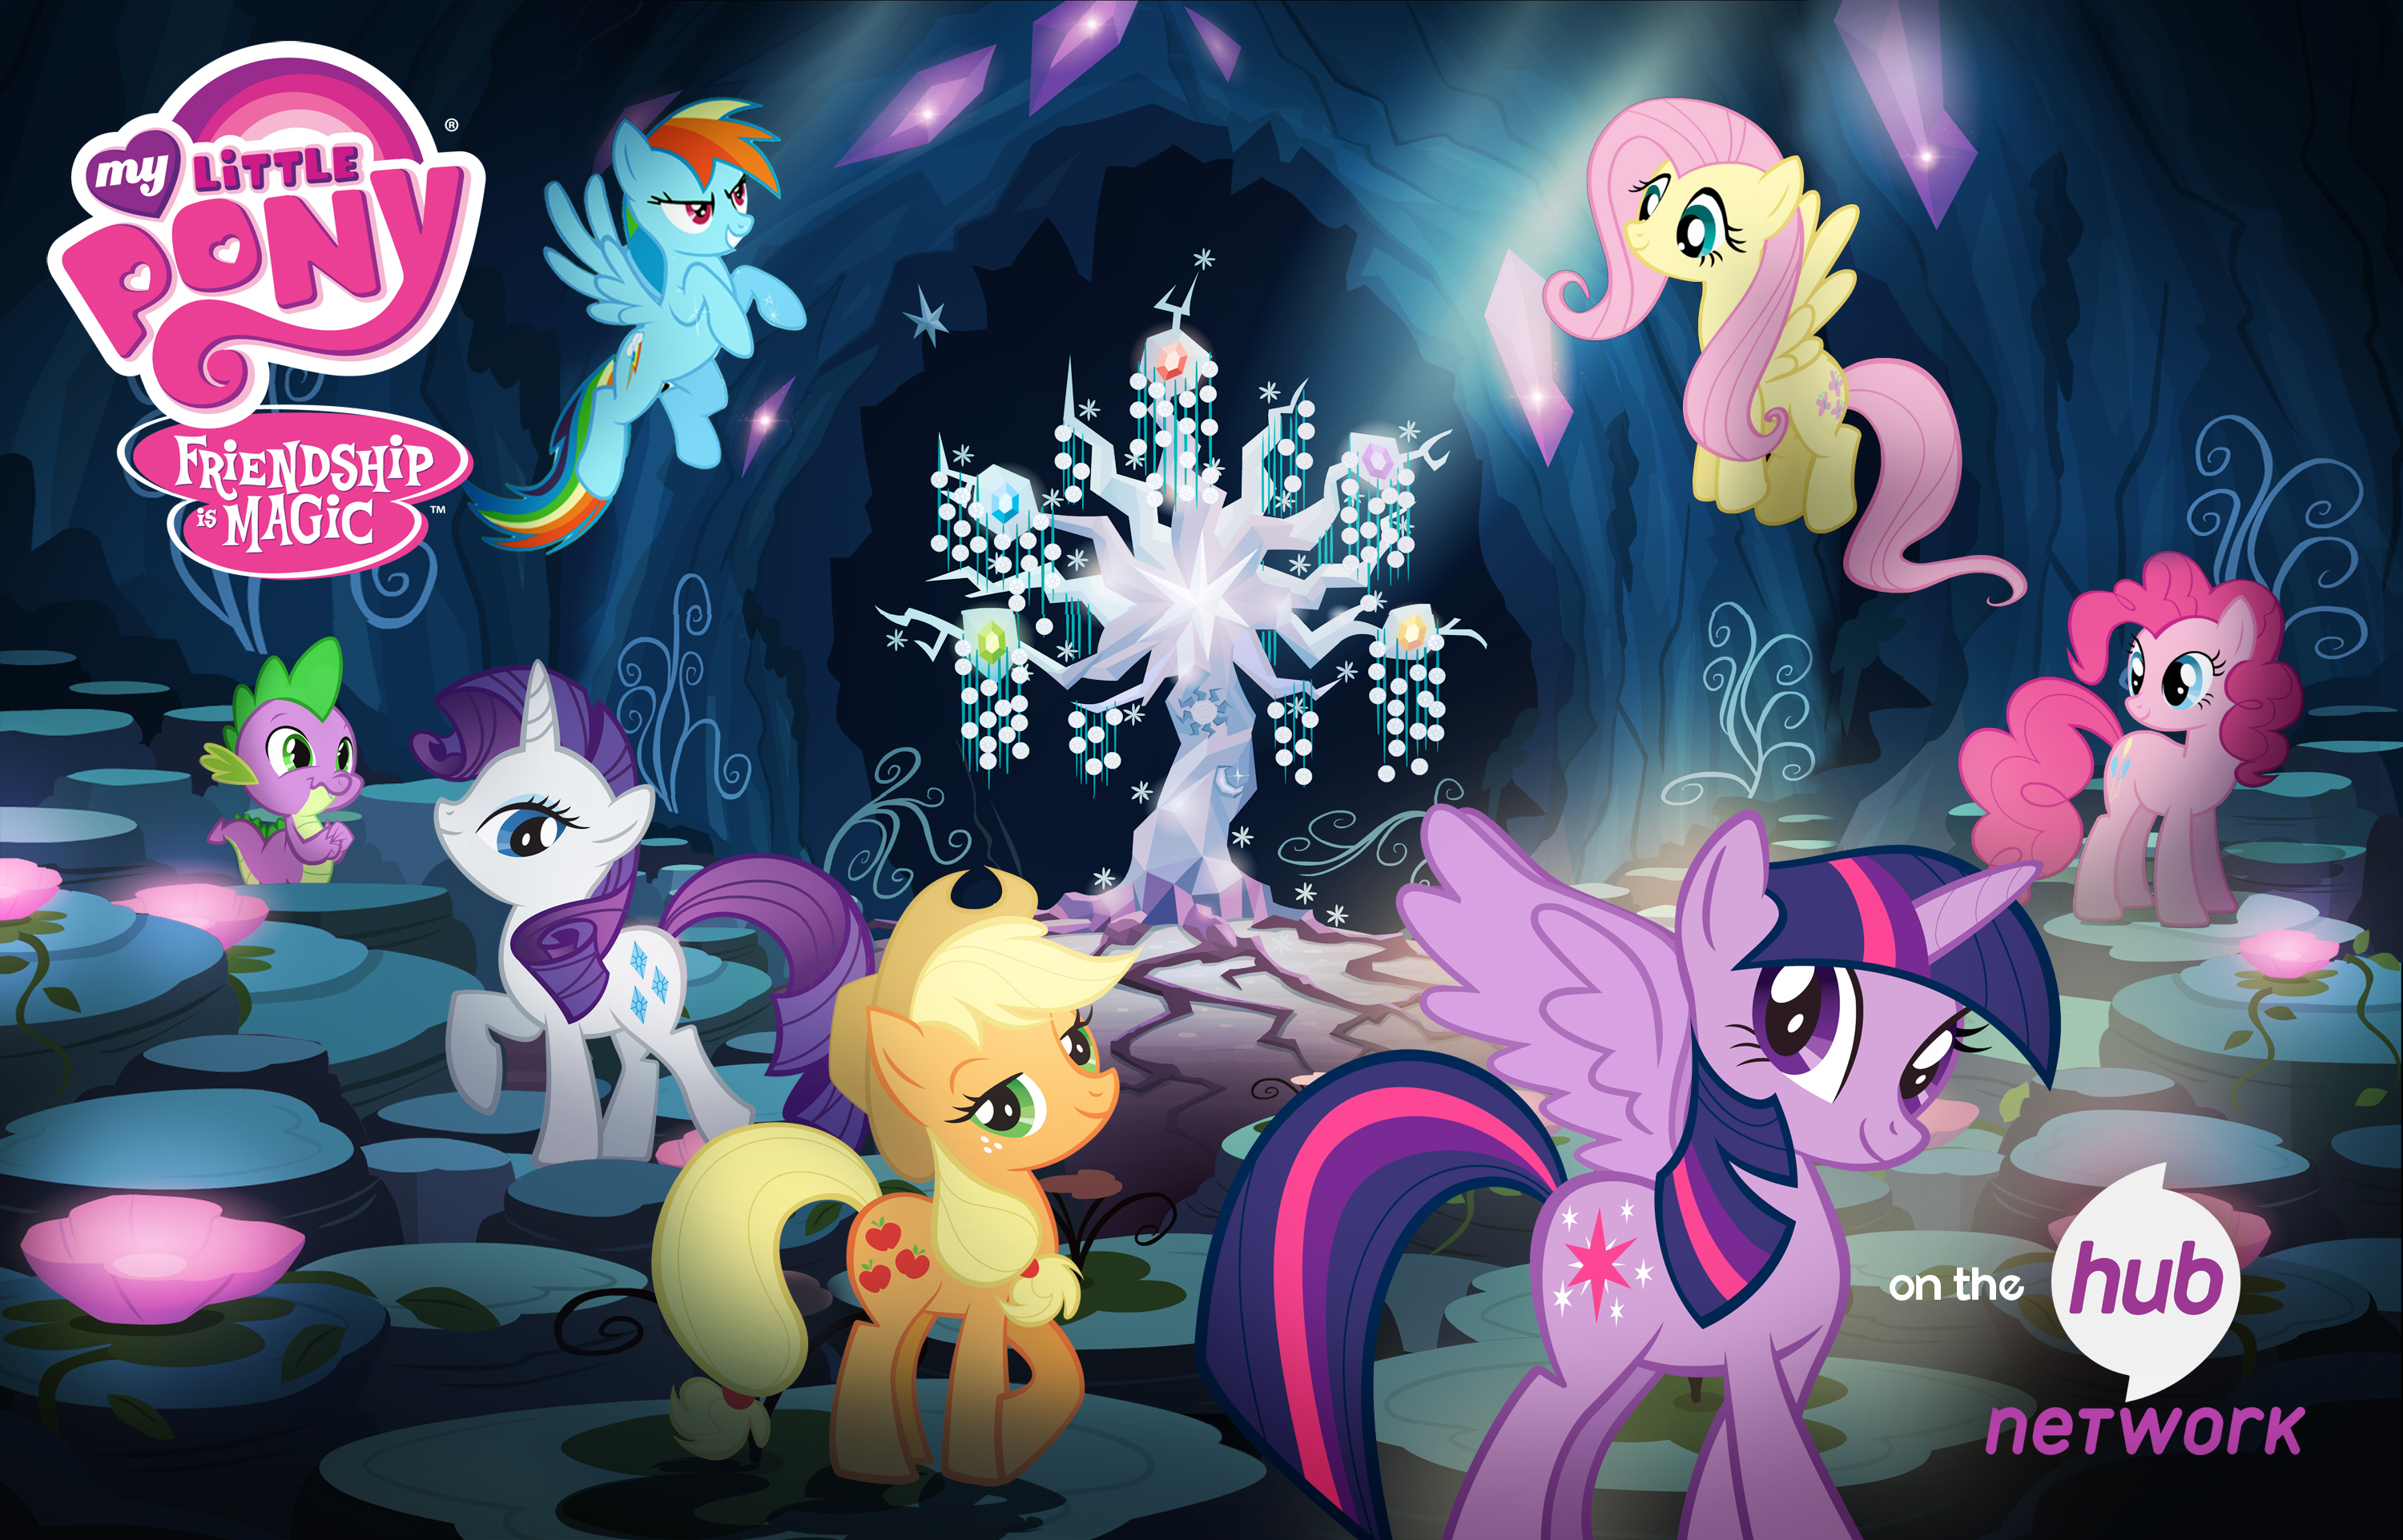 my little pony friendship is magic programs the hub network